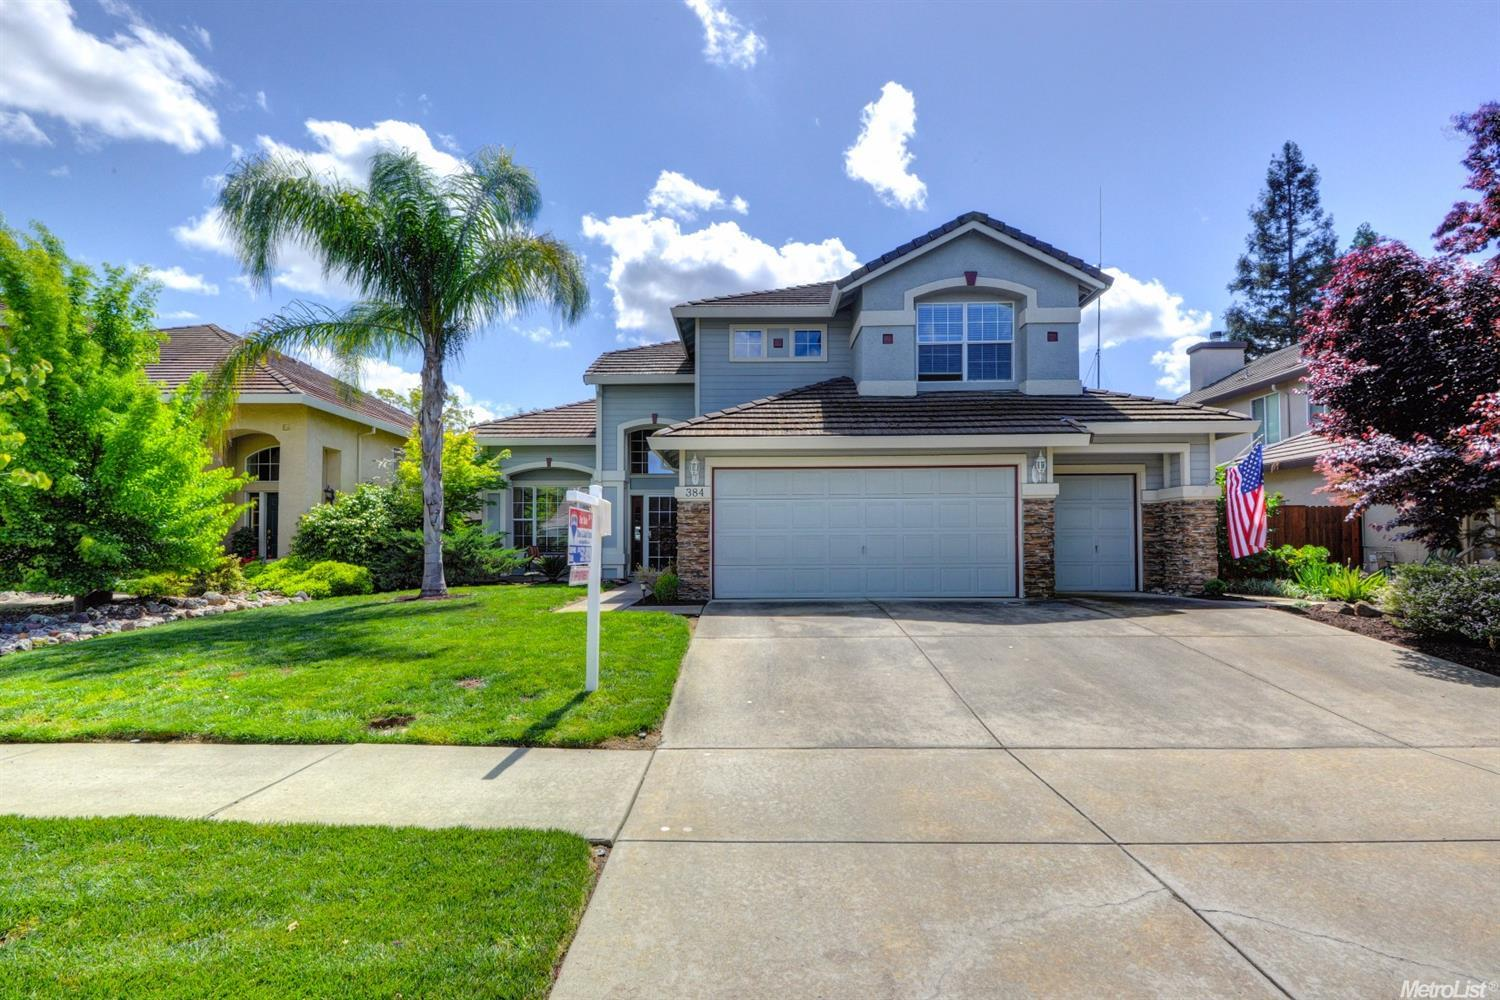 384 Farmington Cir, Roseville, CA